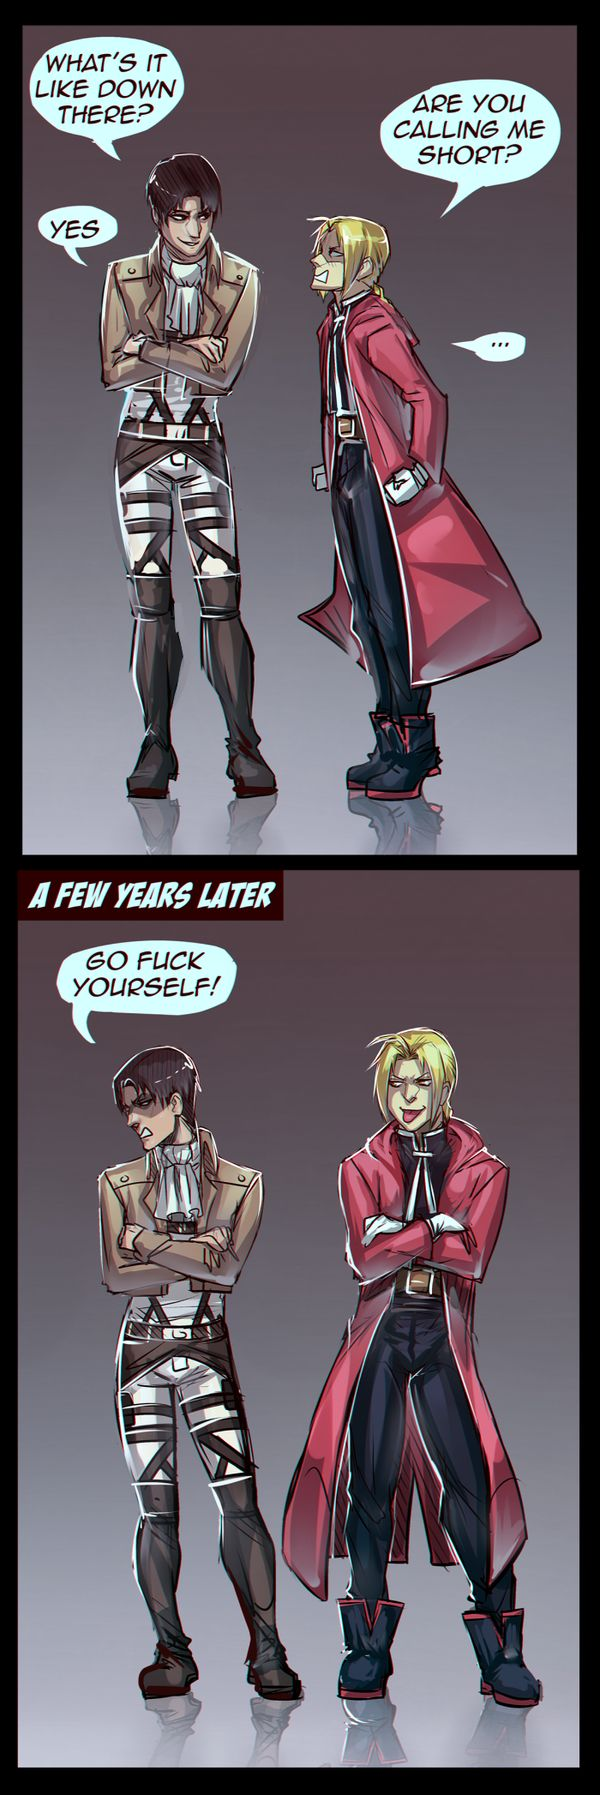 snk/fma - Edward and Levi. Haha, who's shorter now?